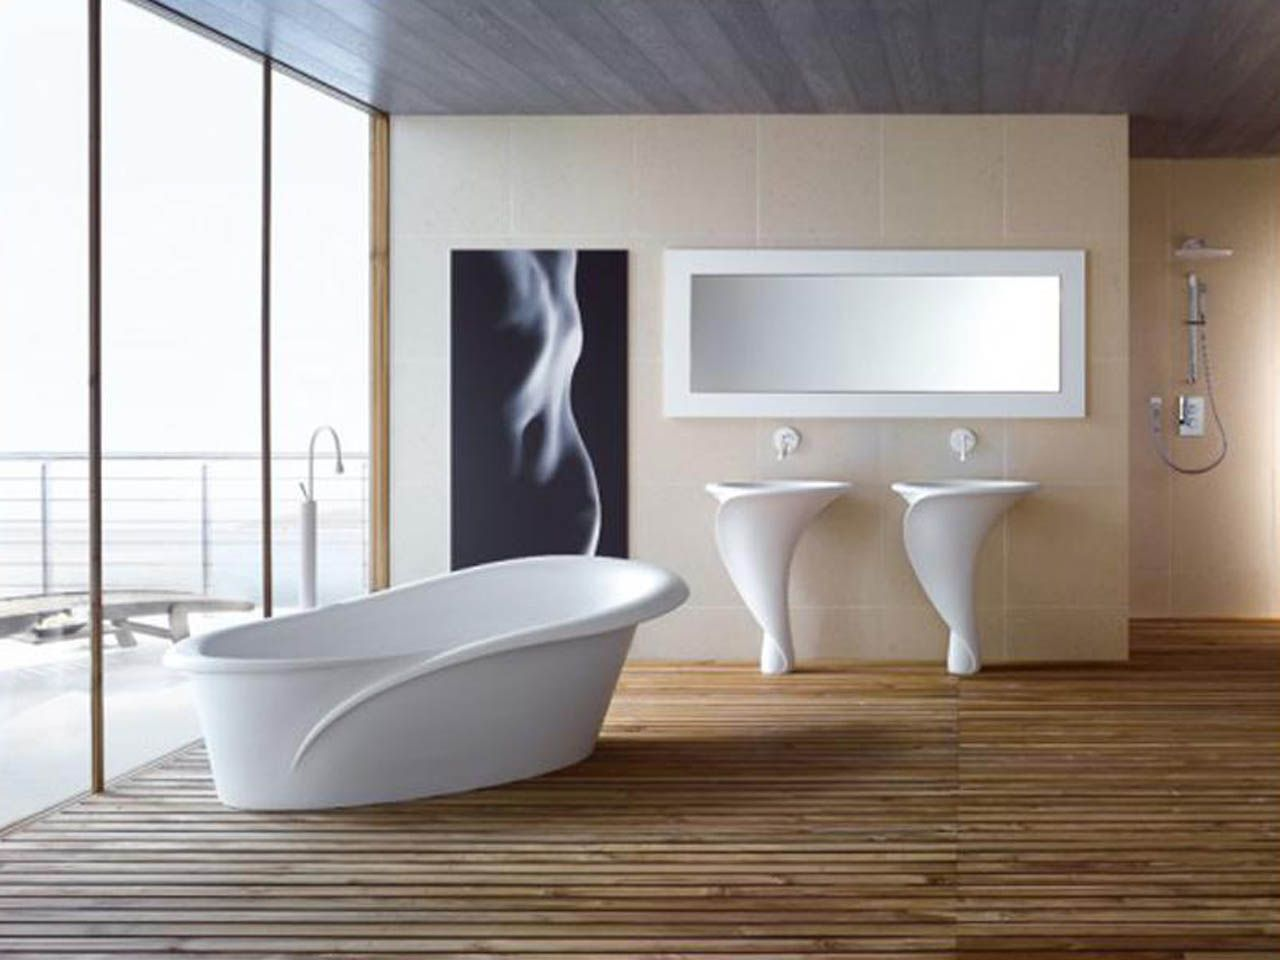 bathroom design exquisite sexy twisting italian bathroom interior design ideas with white washstand body size - Bathroom Design Ideas Italian